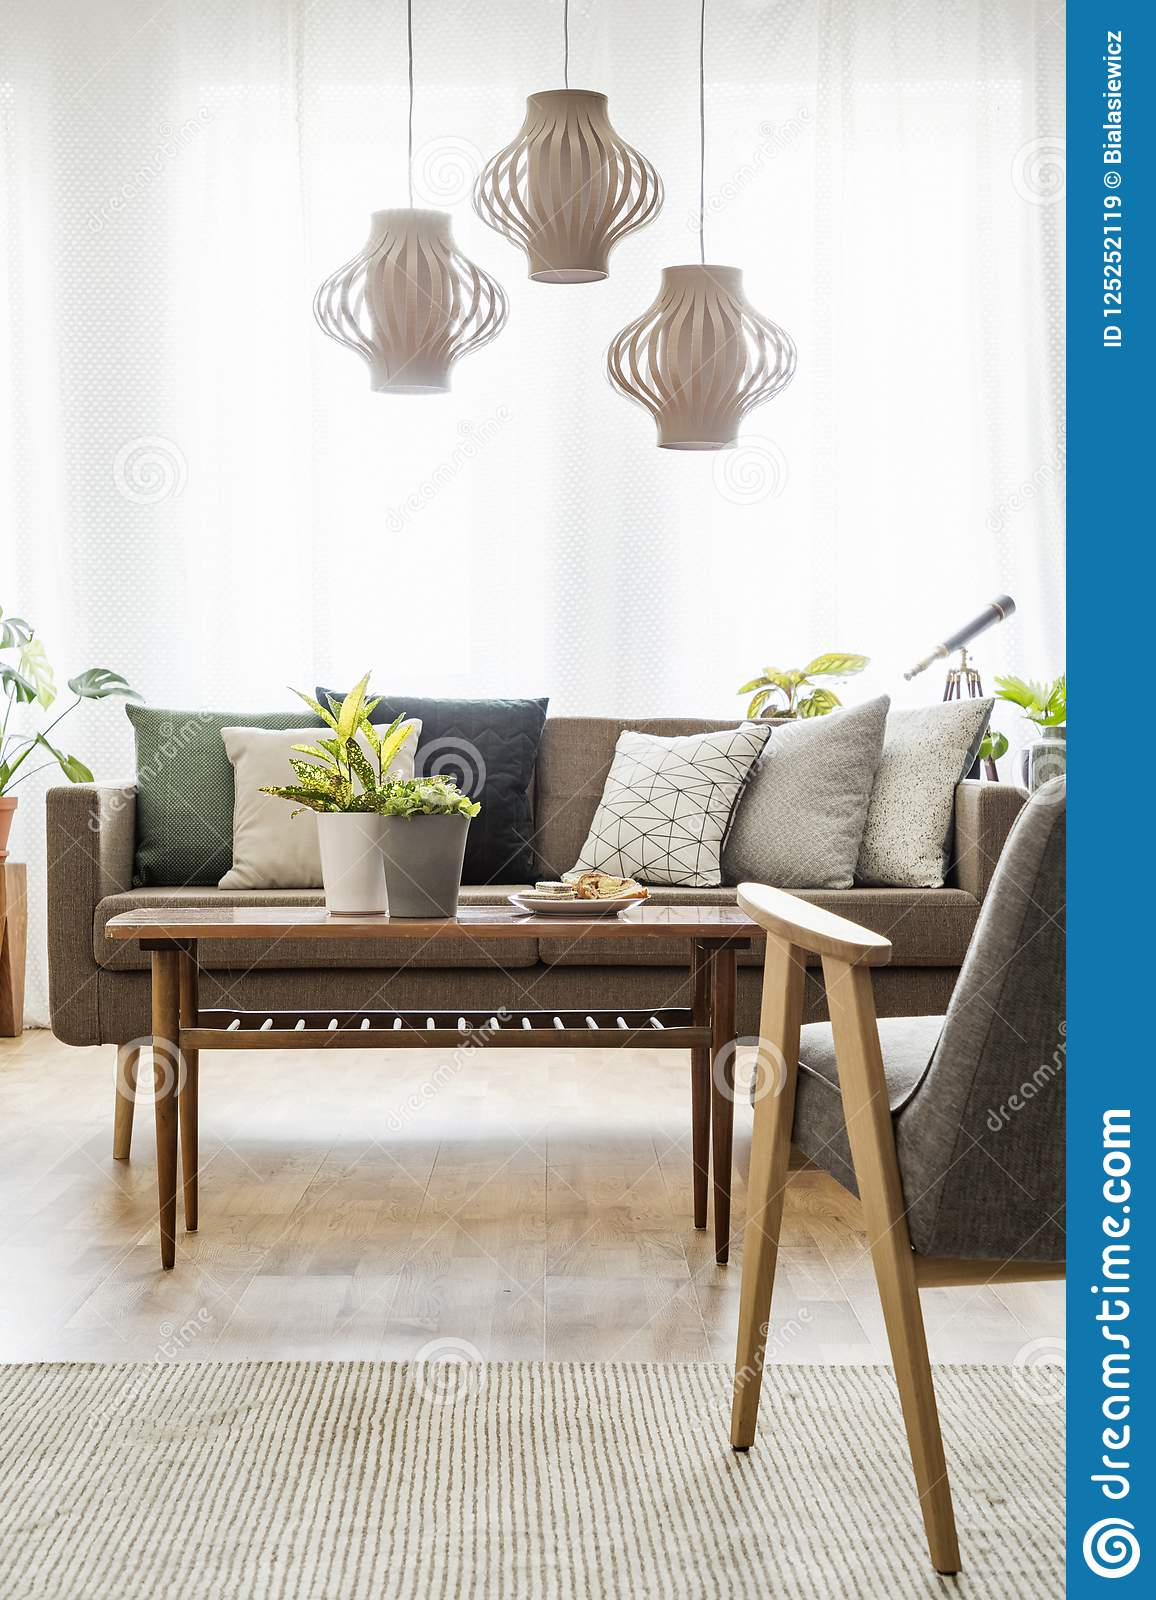 real photo of a table with plants standing between a sofa